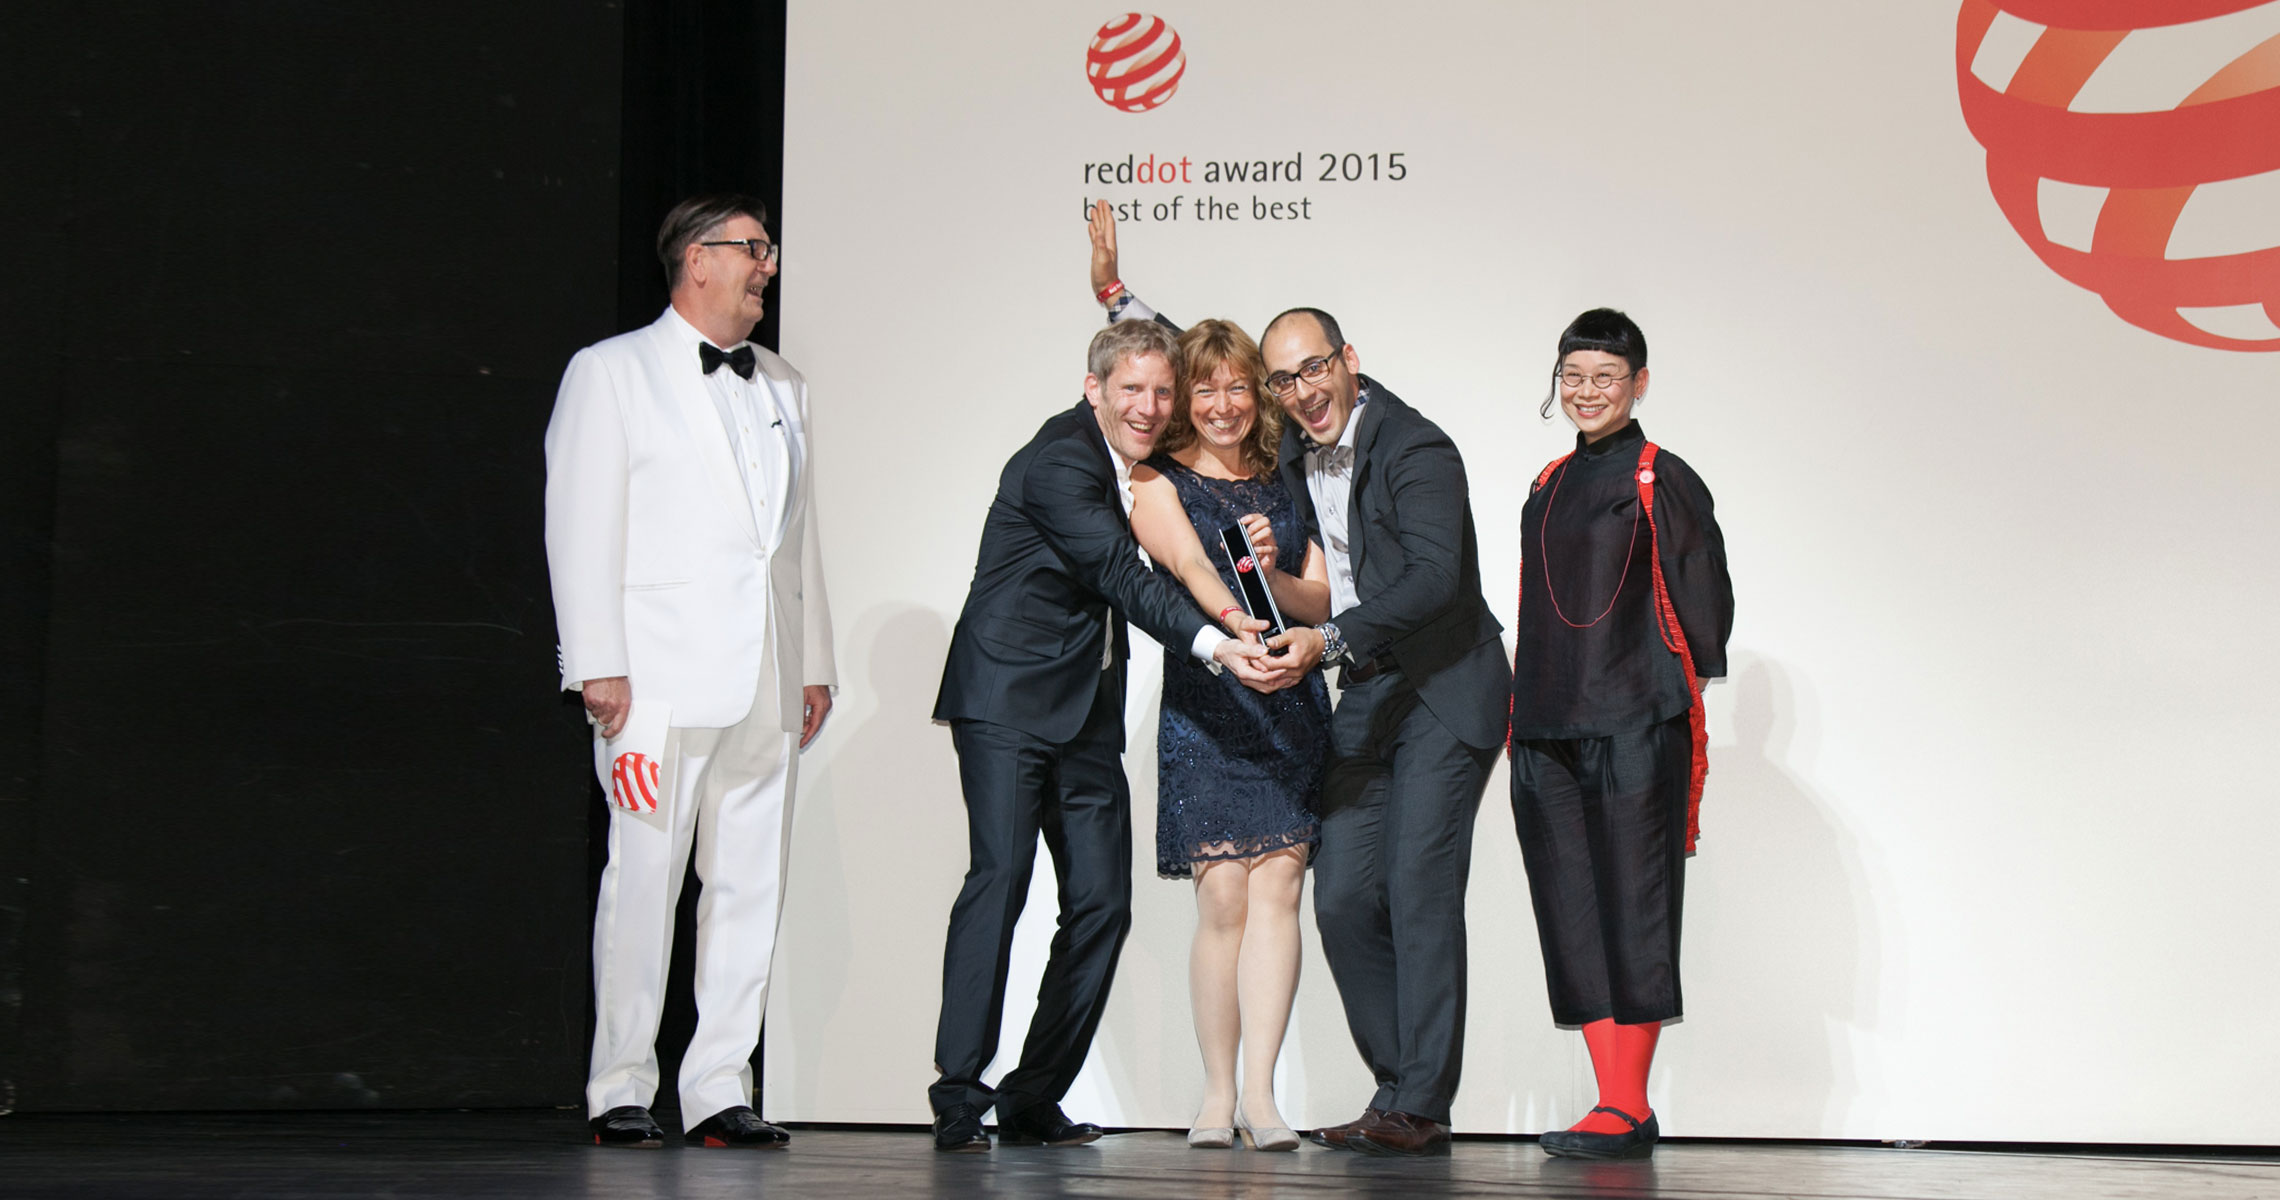 red dot award 2015 Gewinner